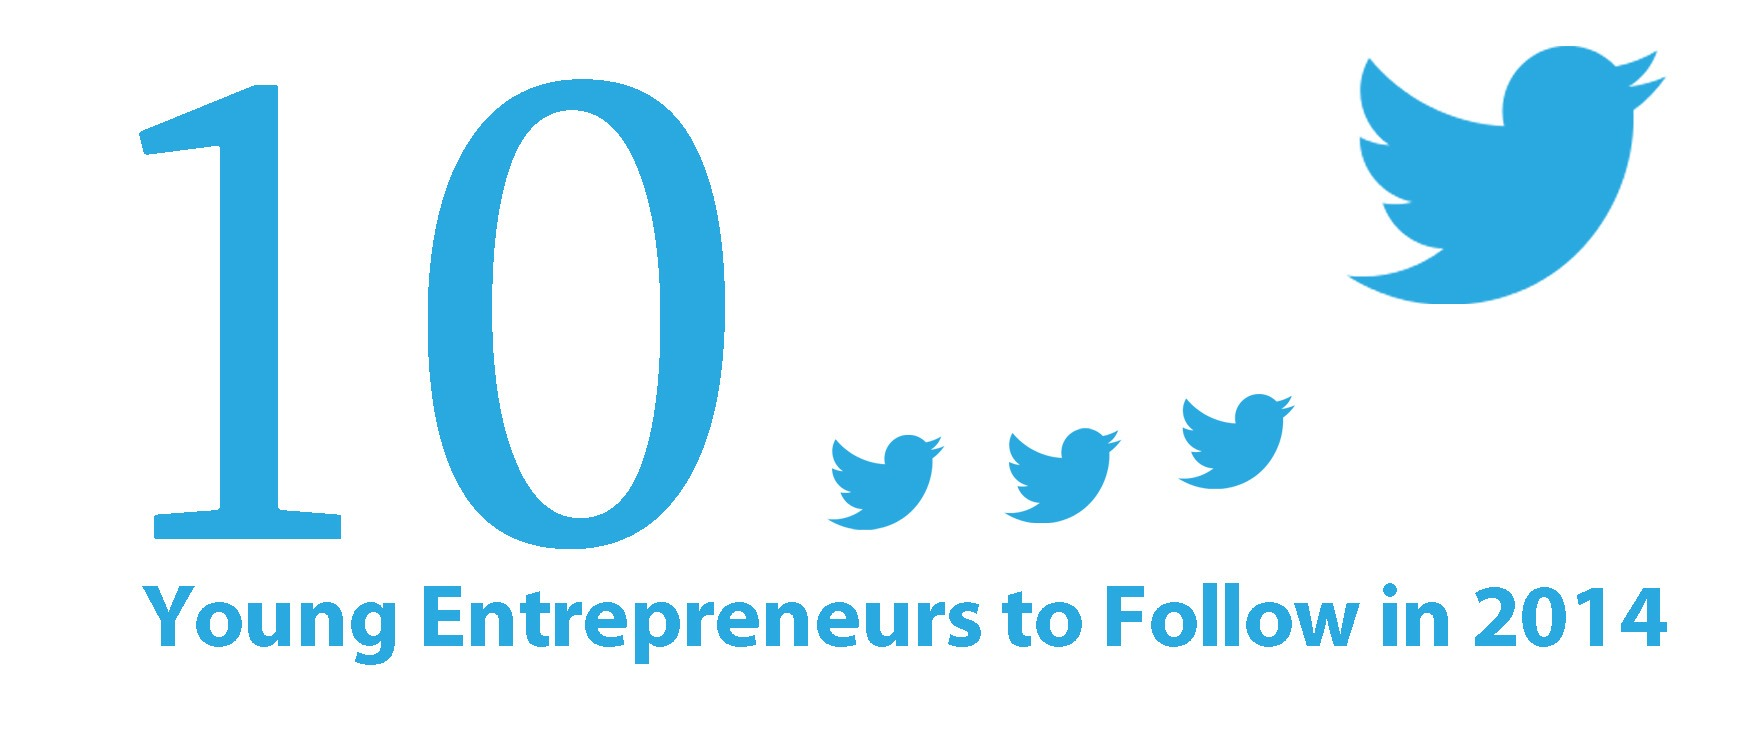 10 Young Entrepreneurs to Follow in 2014